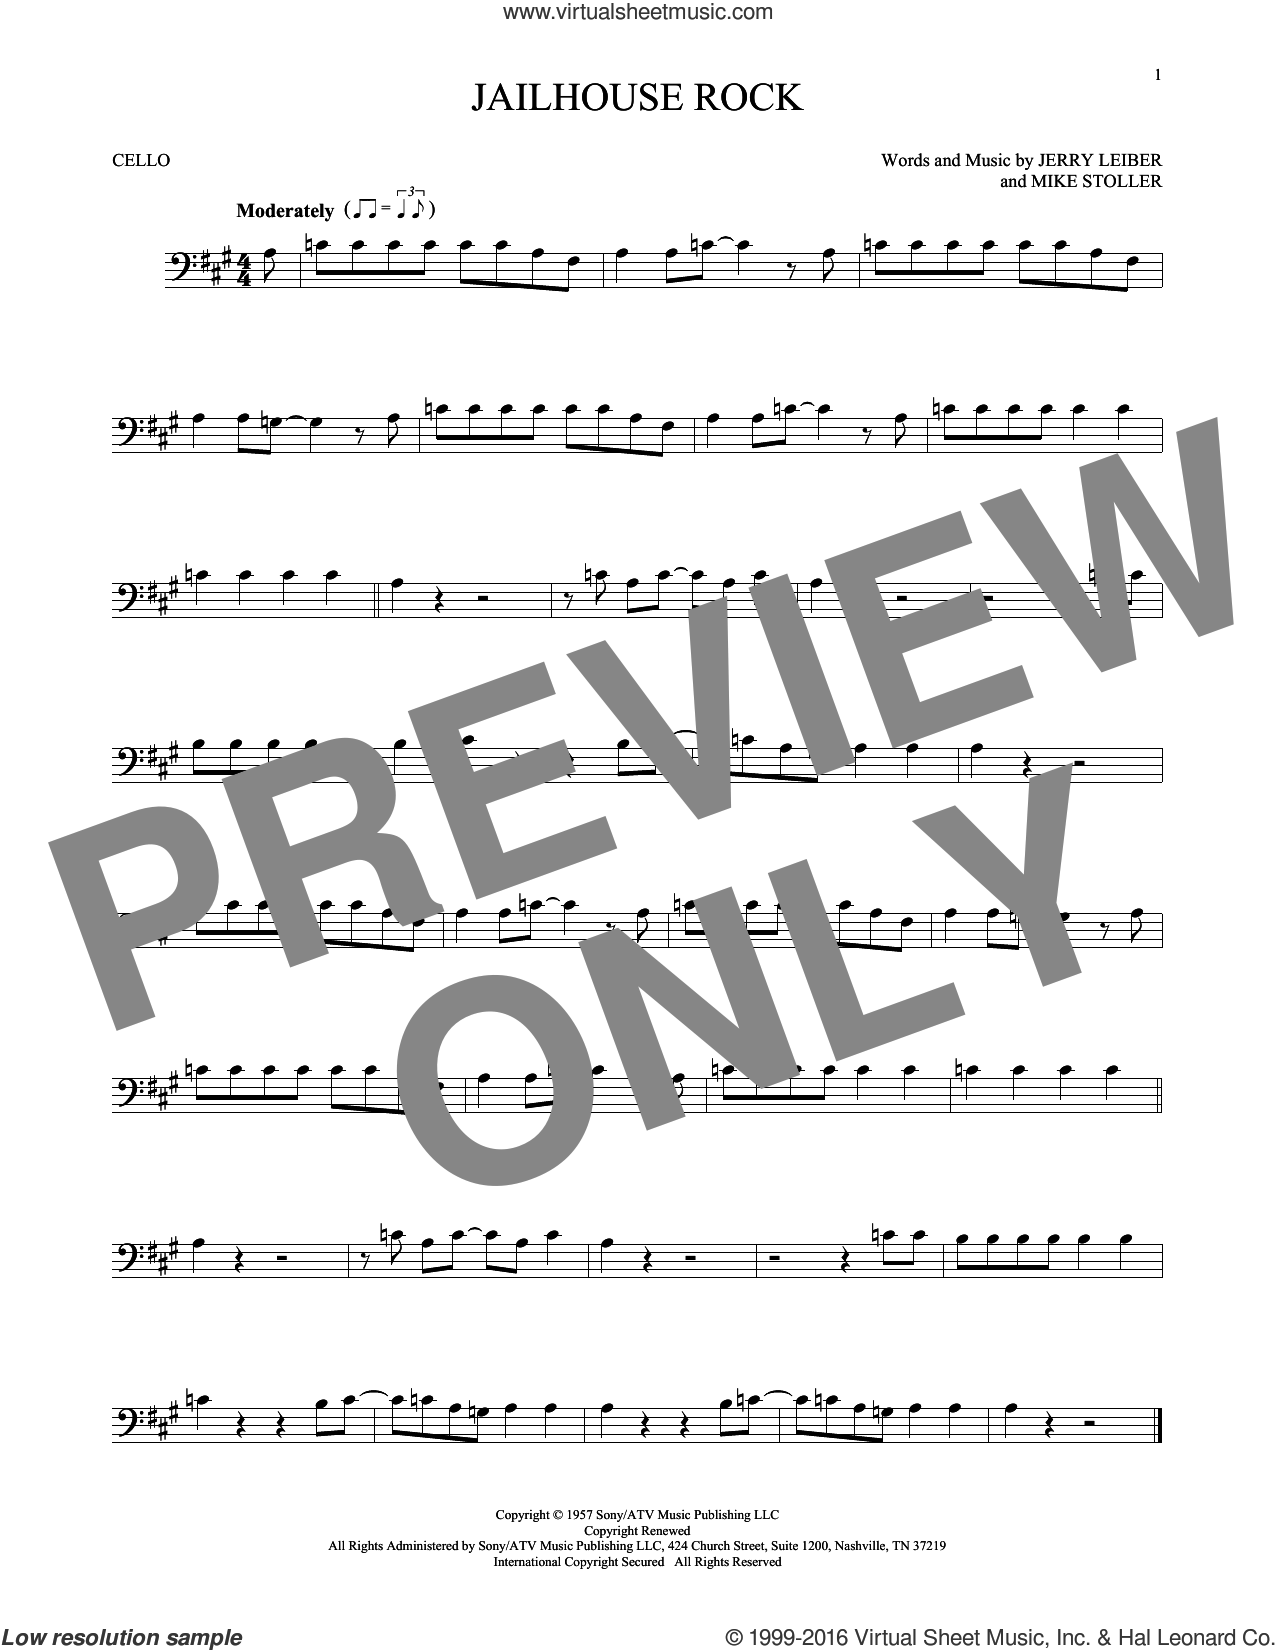 Jailhouse Rock sheet music for cello solo by Elvis Presley, Jerry Leiber and Mike Stoller, intermediate skill level